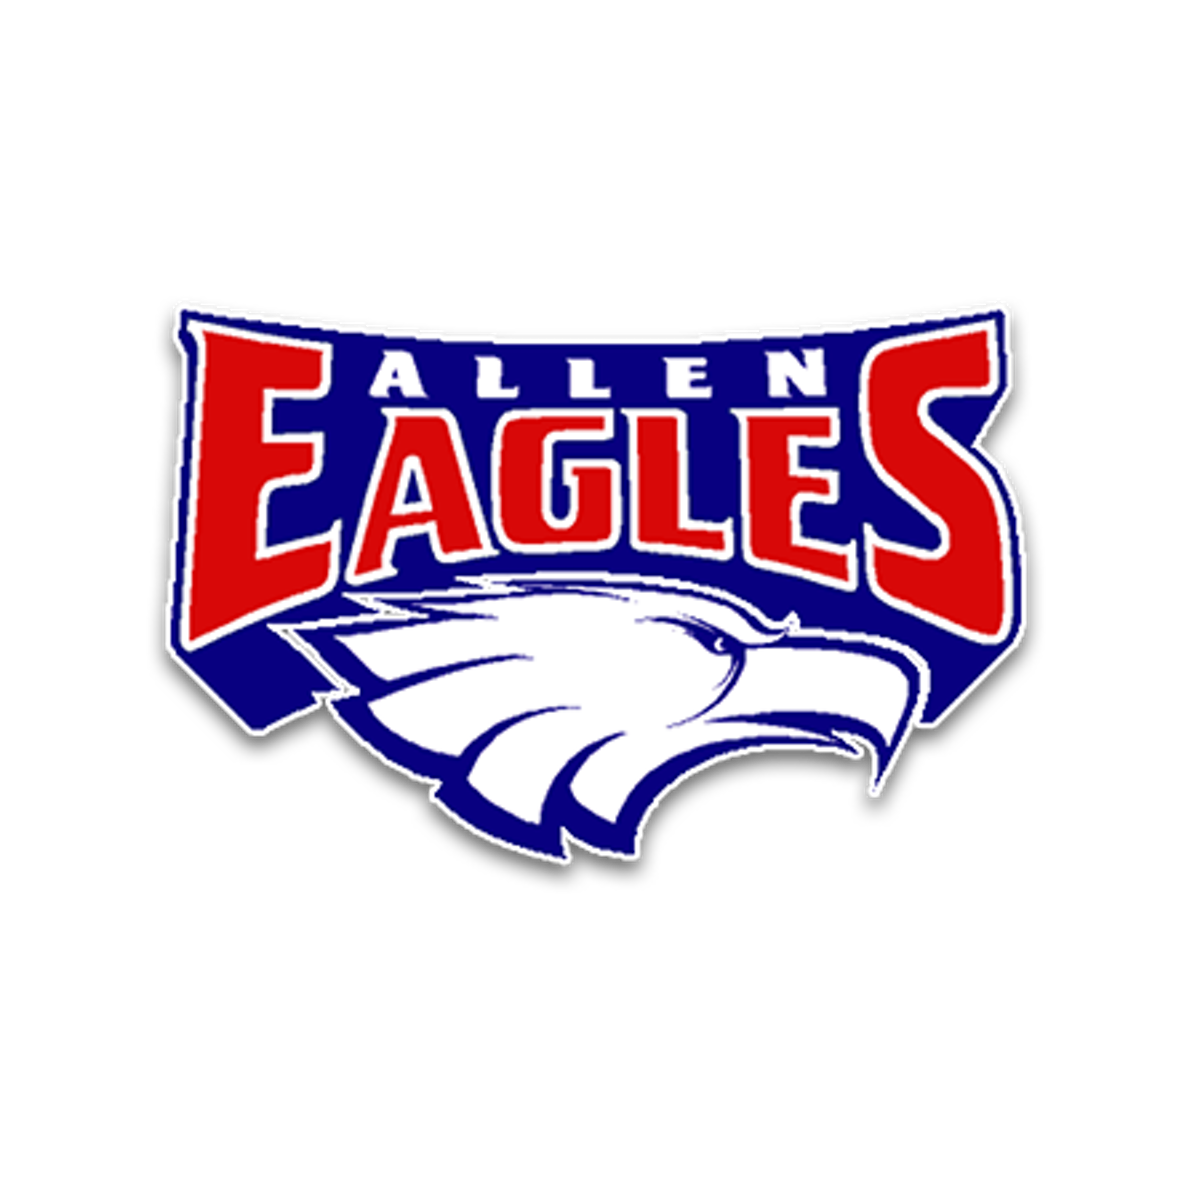 Red Eagles Football Logo Images & Pictures - Becuo Eagle Football Logo